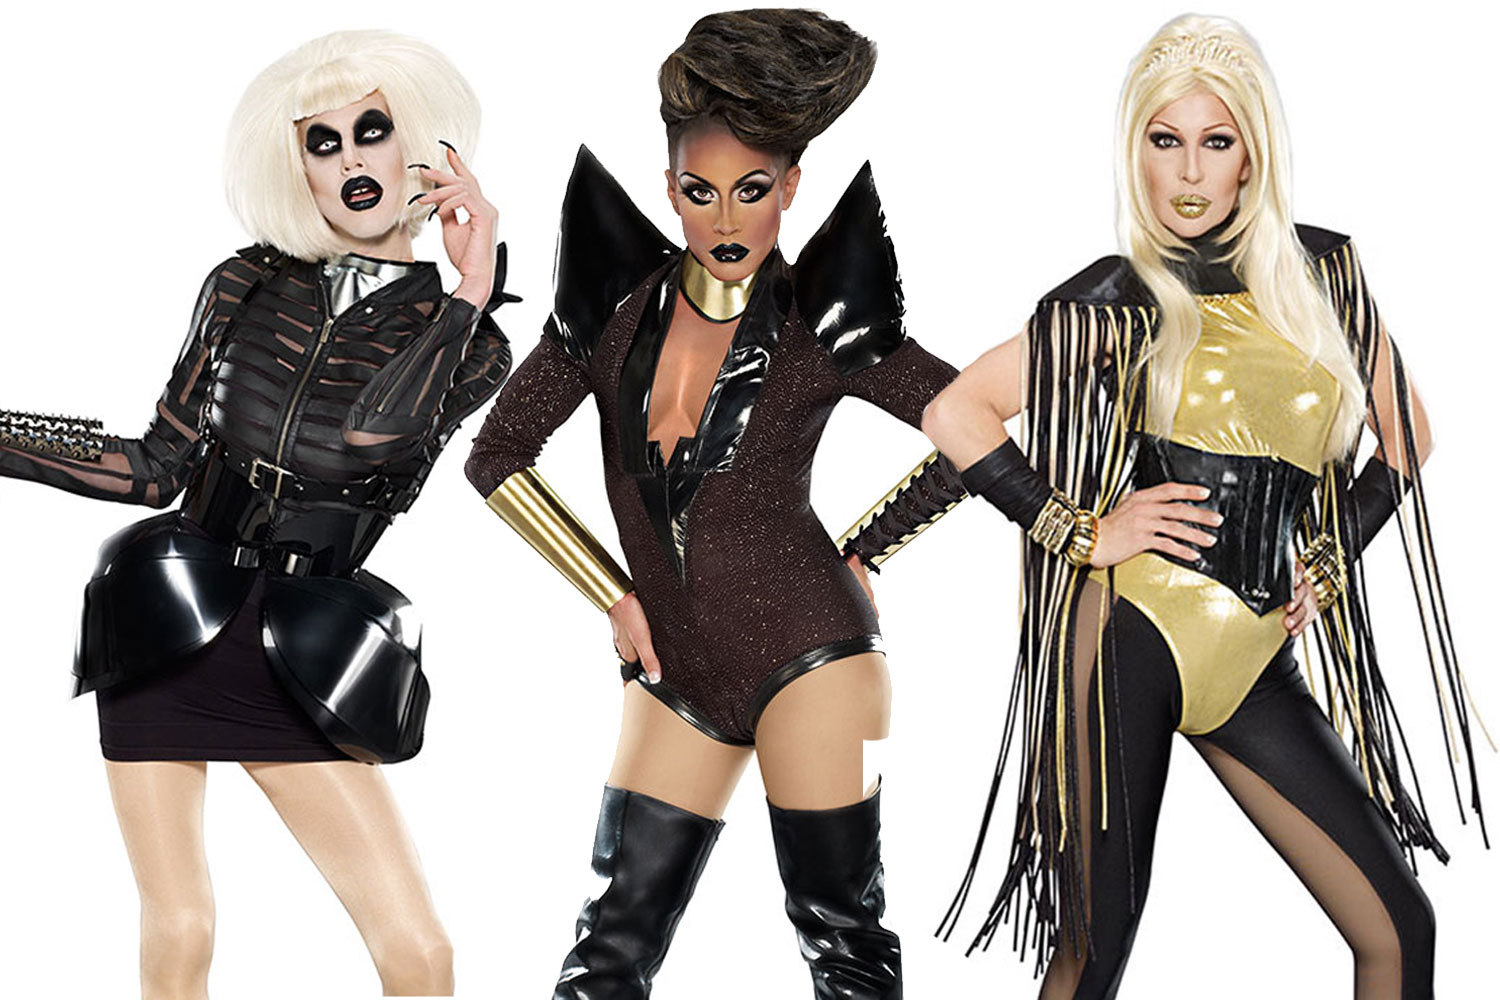 RuPaul's Drag Race, Season 4 finalists: Sharon Needles, Phi Phi O'Hara, and Chad Michaels